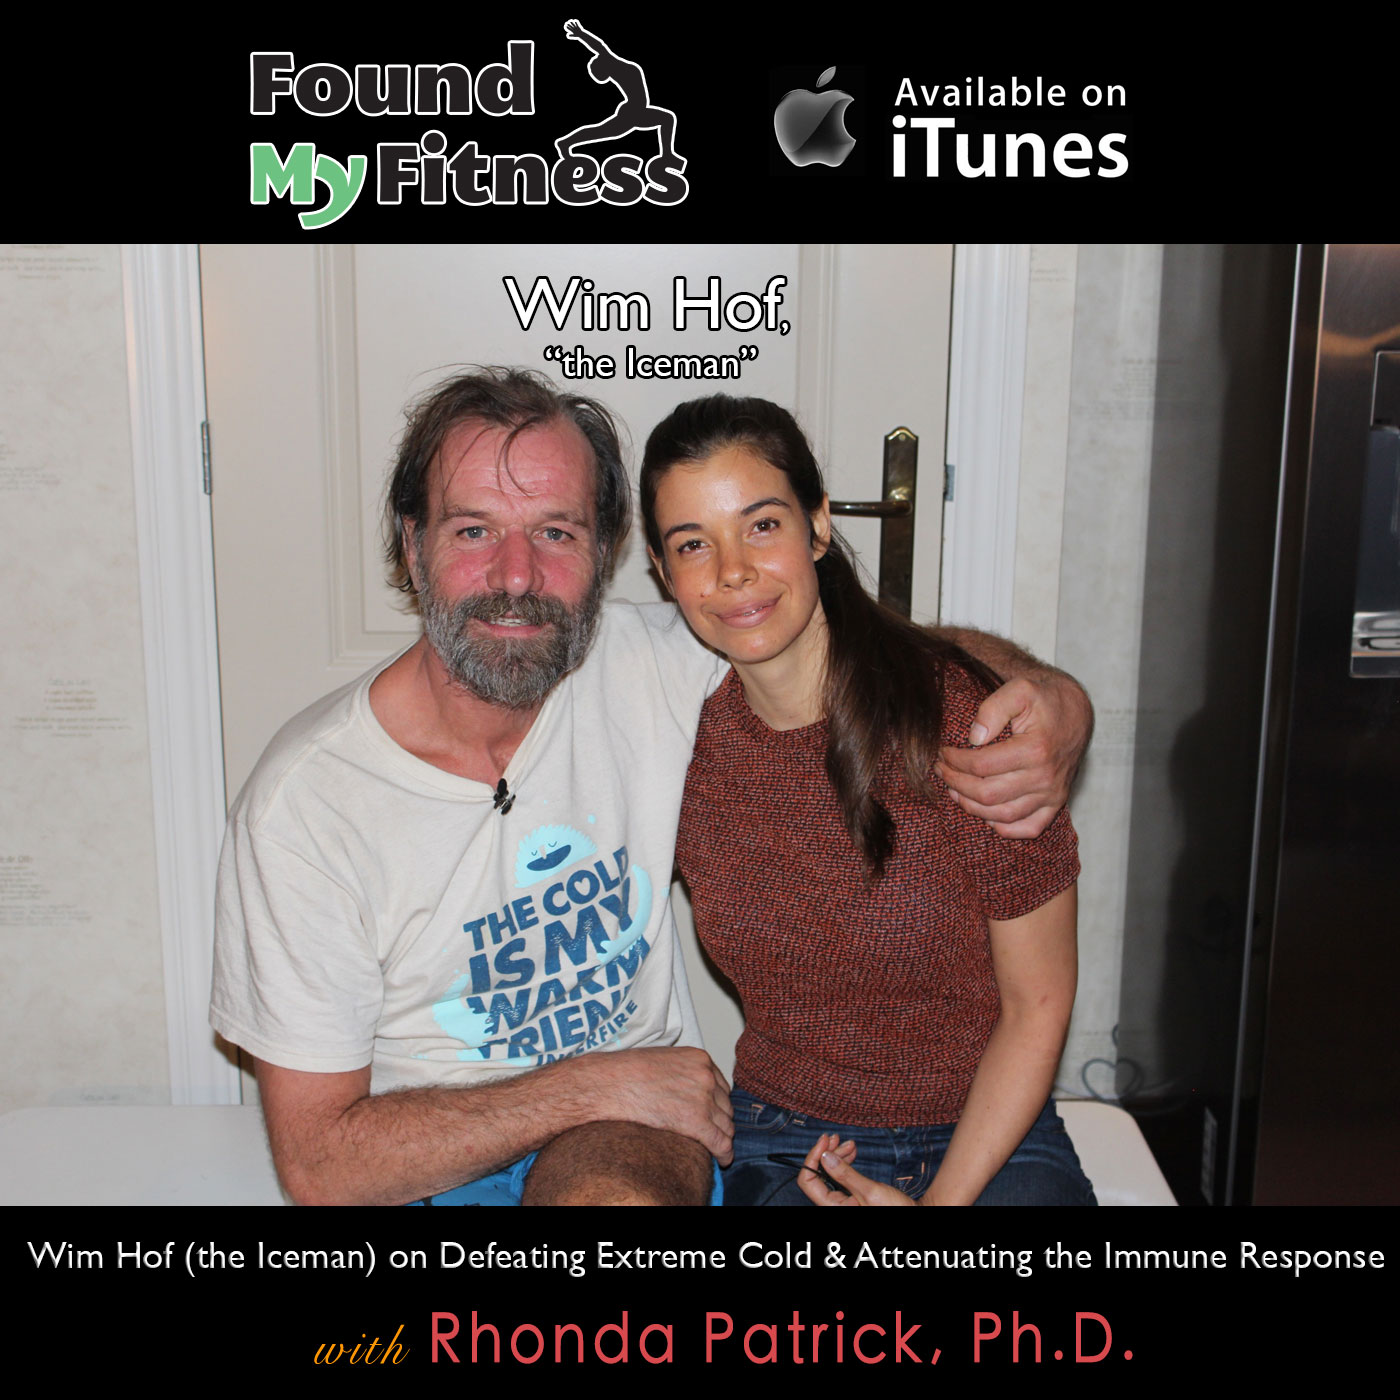 Wim Hof (the Iceman) on Defeating Extreme Cold & Attenuating the Immune Response